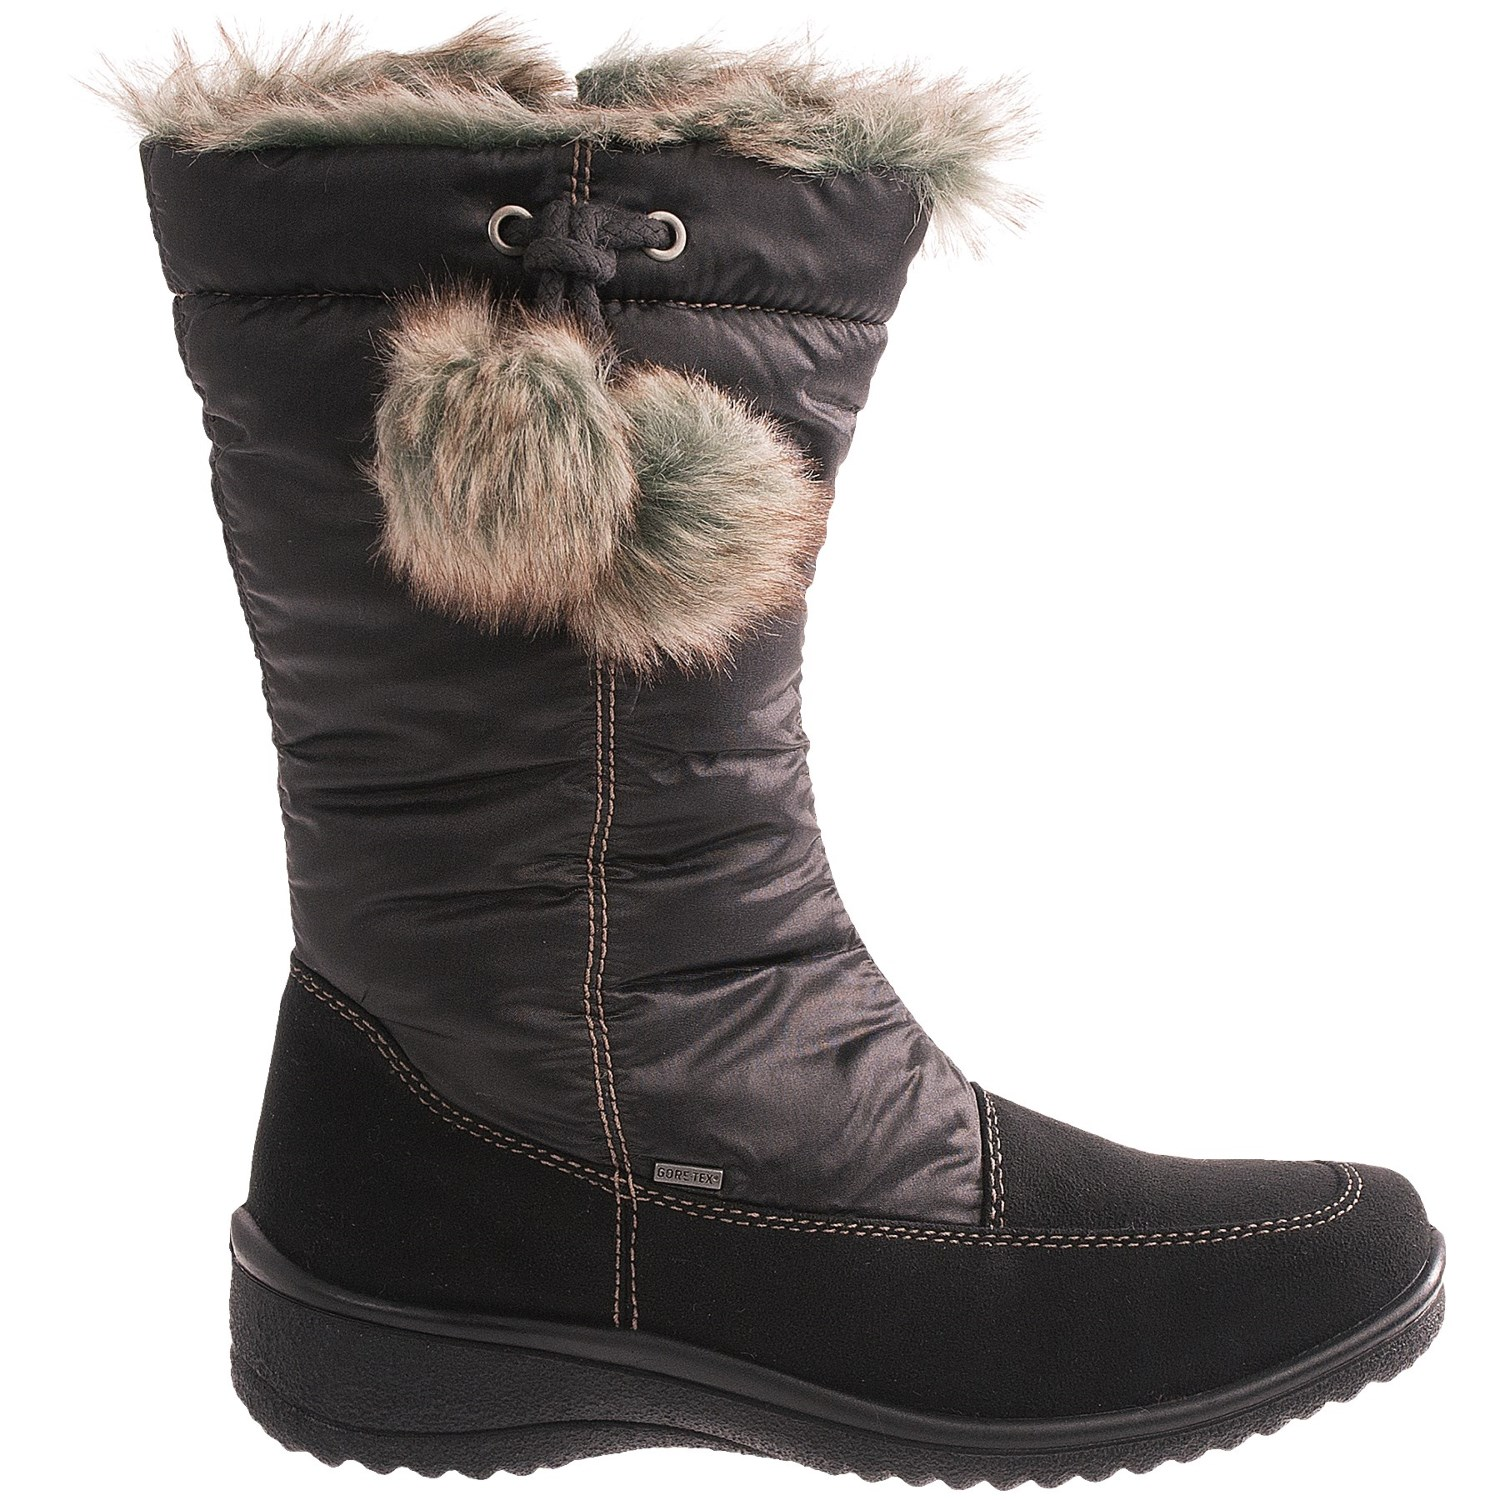 Buy Clearance Snow Boots | Homewood Mountain Ski Resort